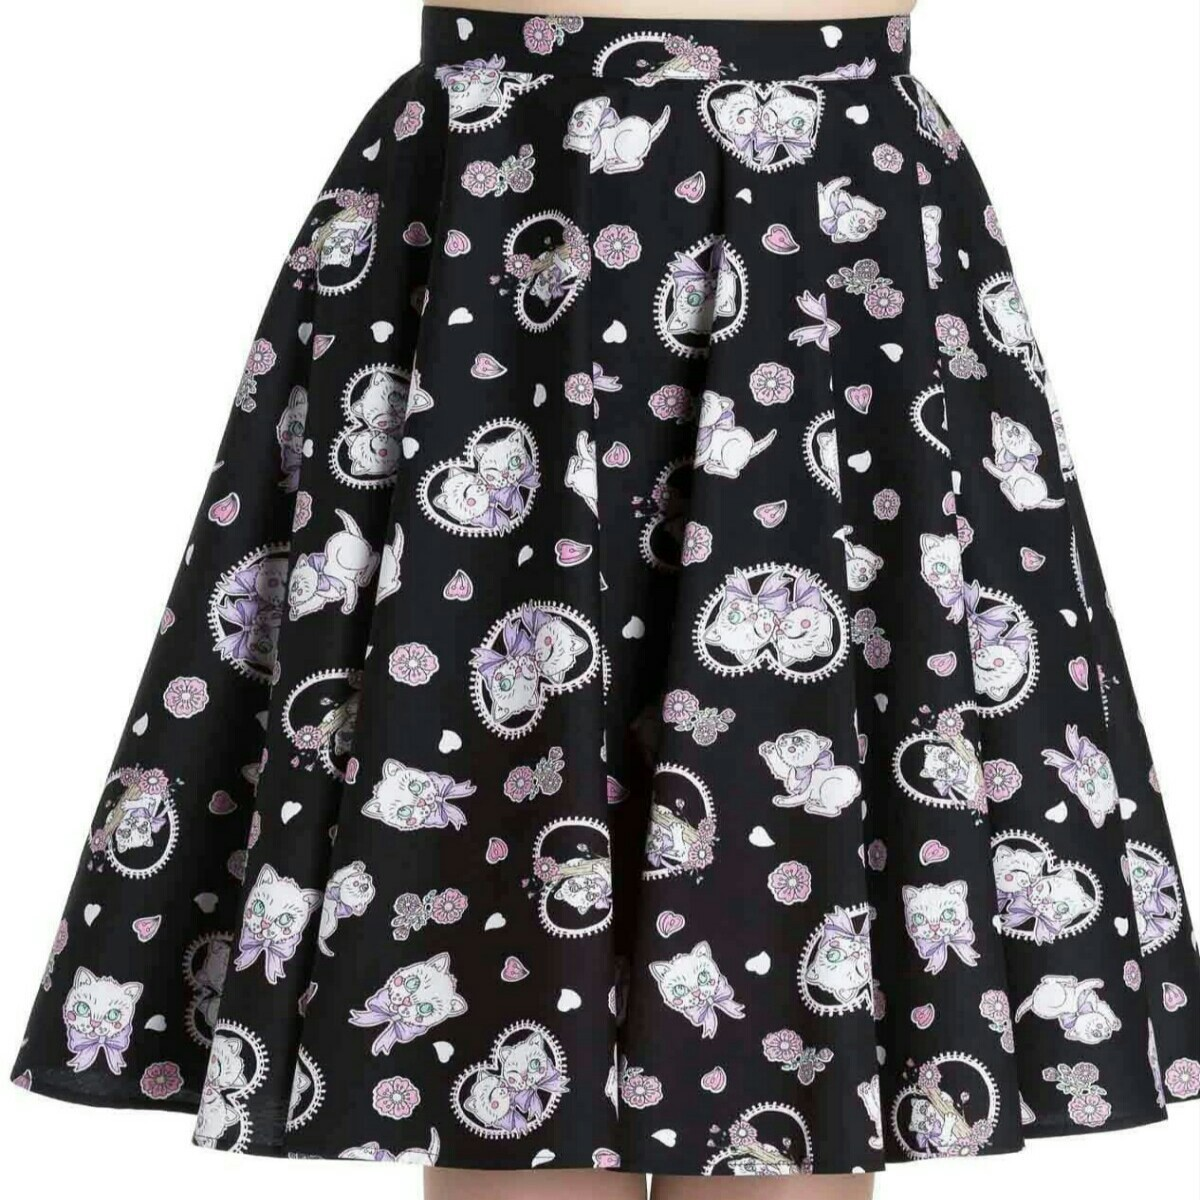 Hell Bunny skirt in adorable cat print